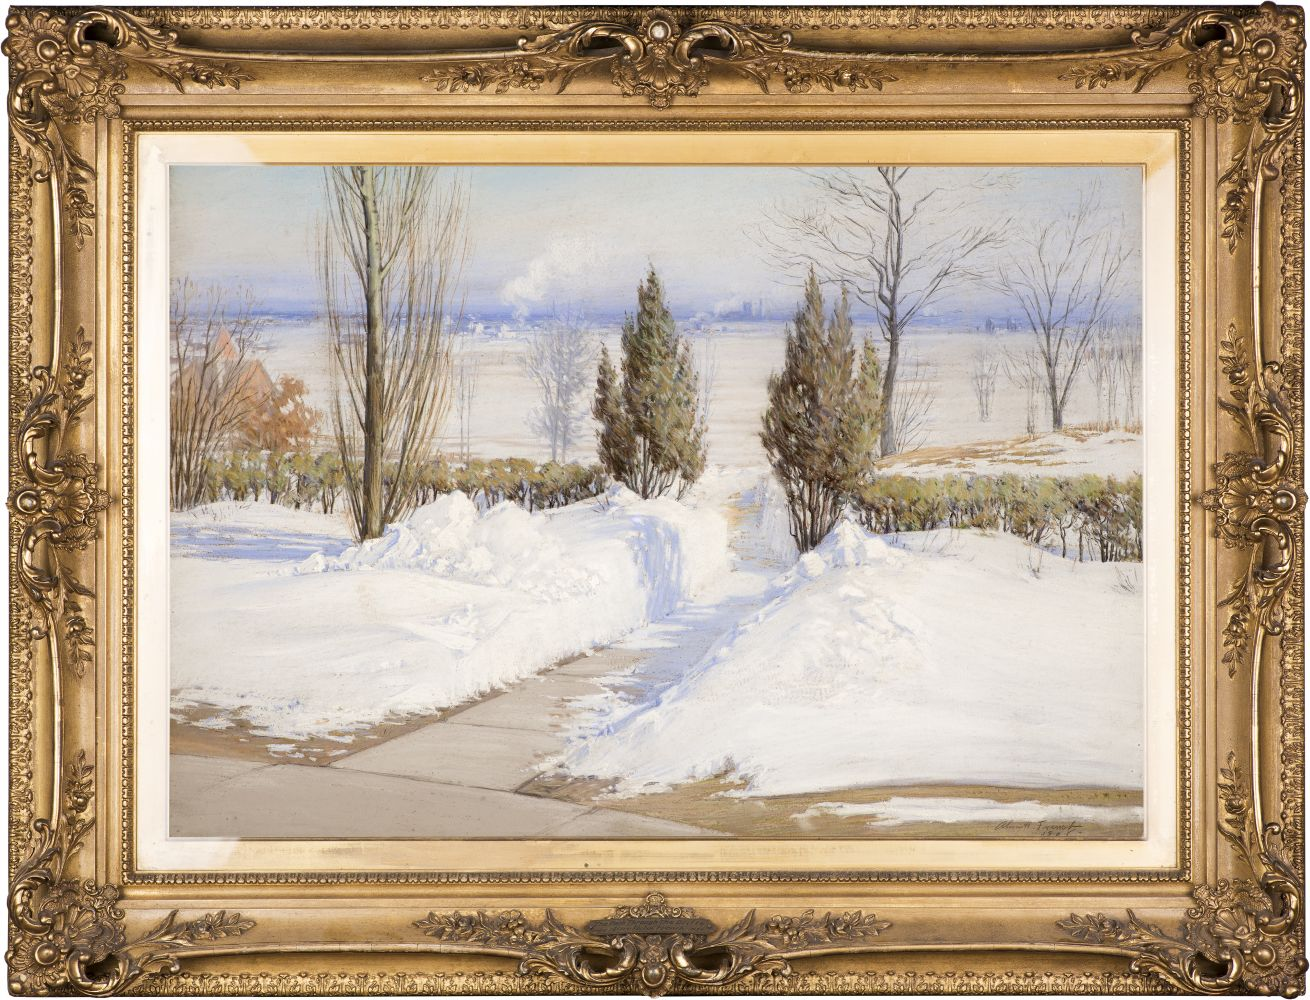 Alice Helm French (1864–after 1953), The Path Through the Drifts, Chicago, 1908, pastel on paper, 23 x 32 in., signed and dated lower right: Alice H. French 1908